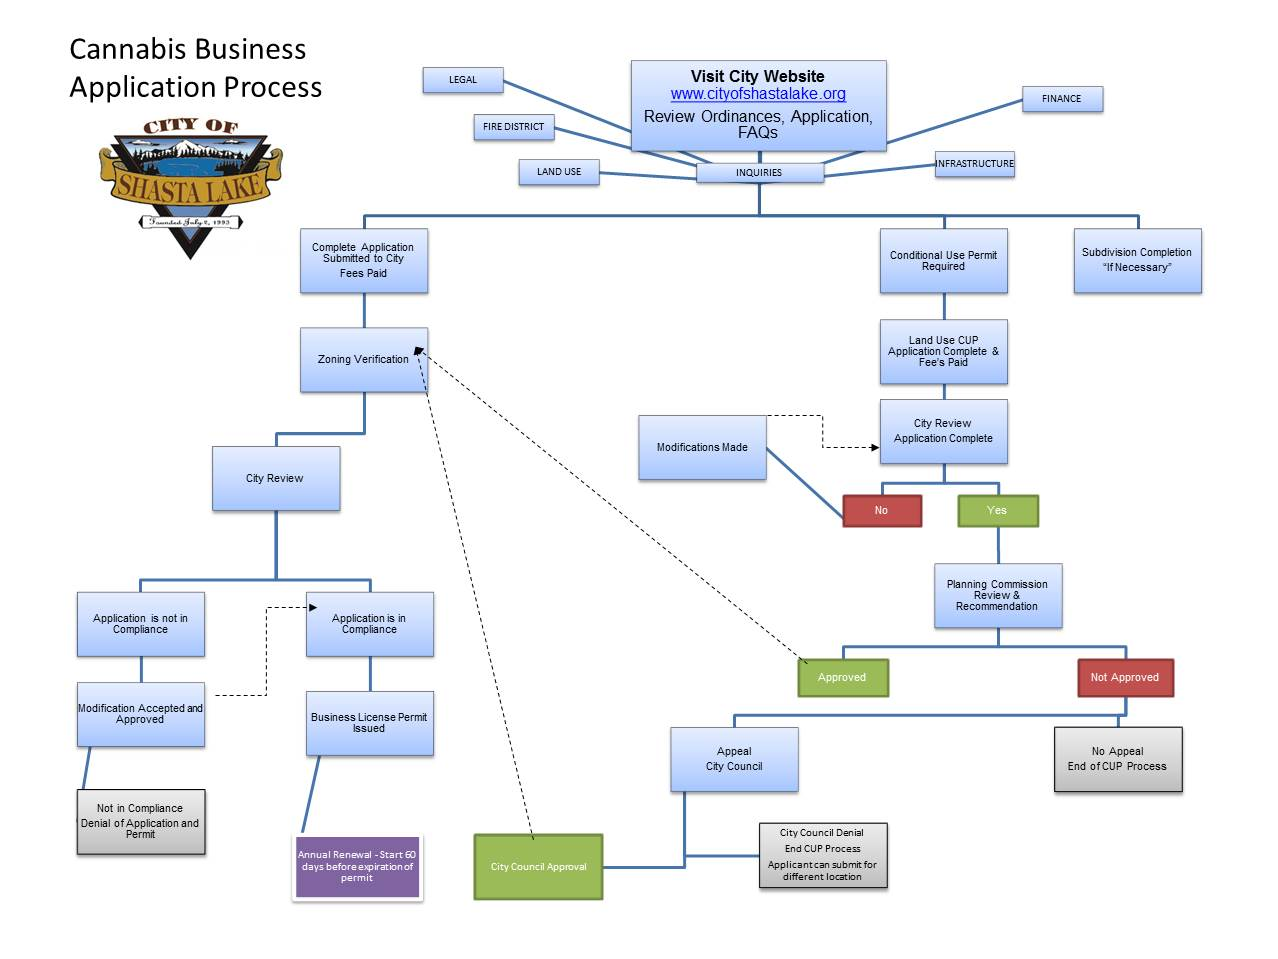 Cannabis Business Application Flow Chart Opens in new window